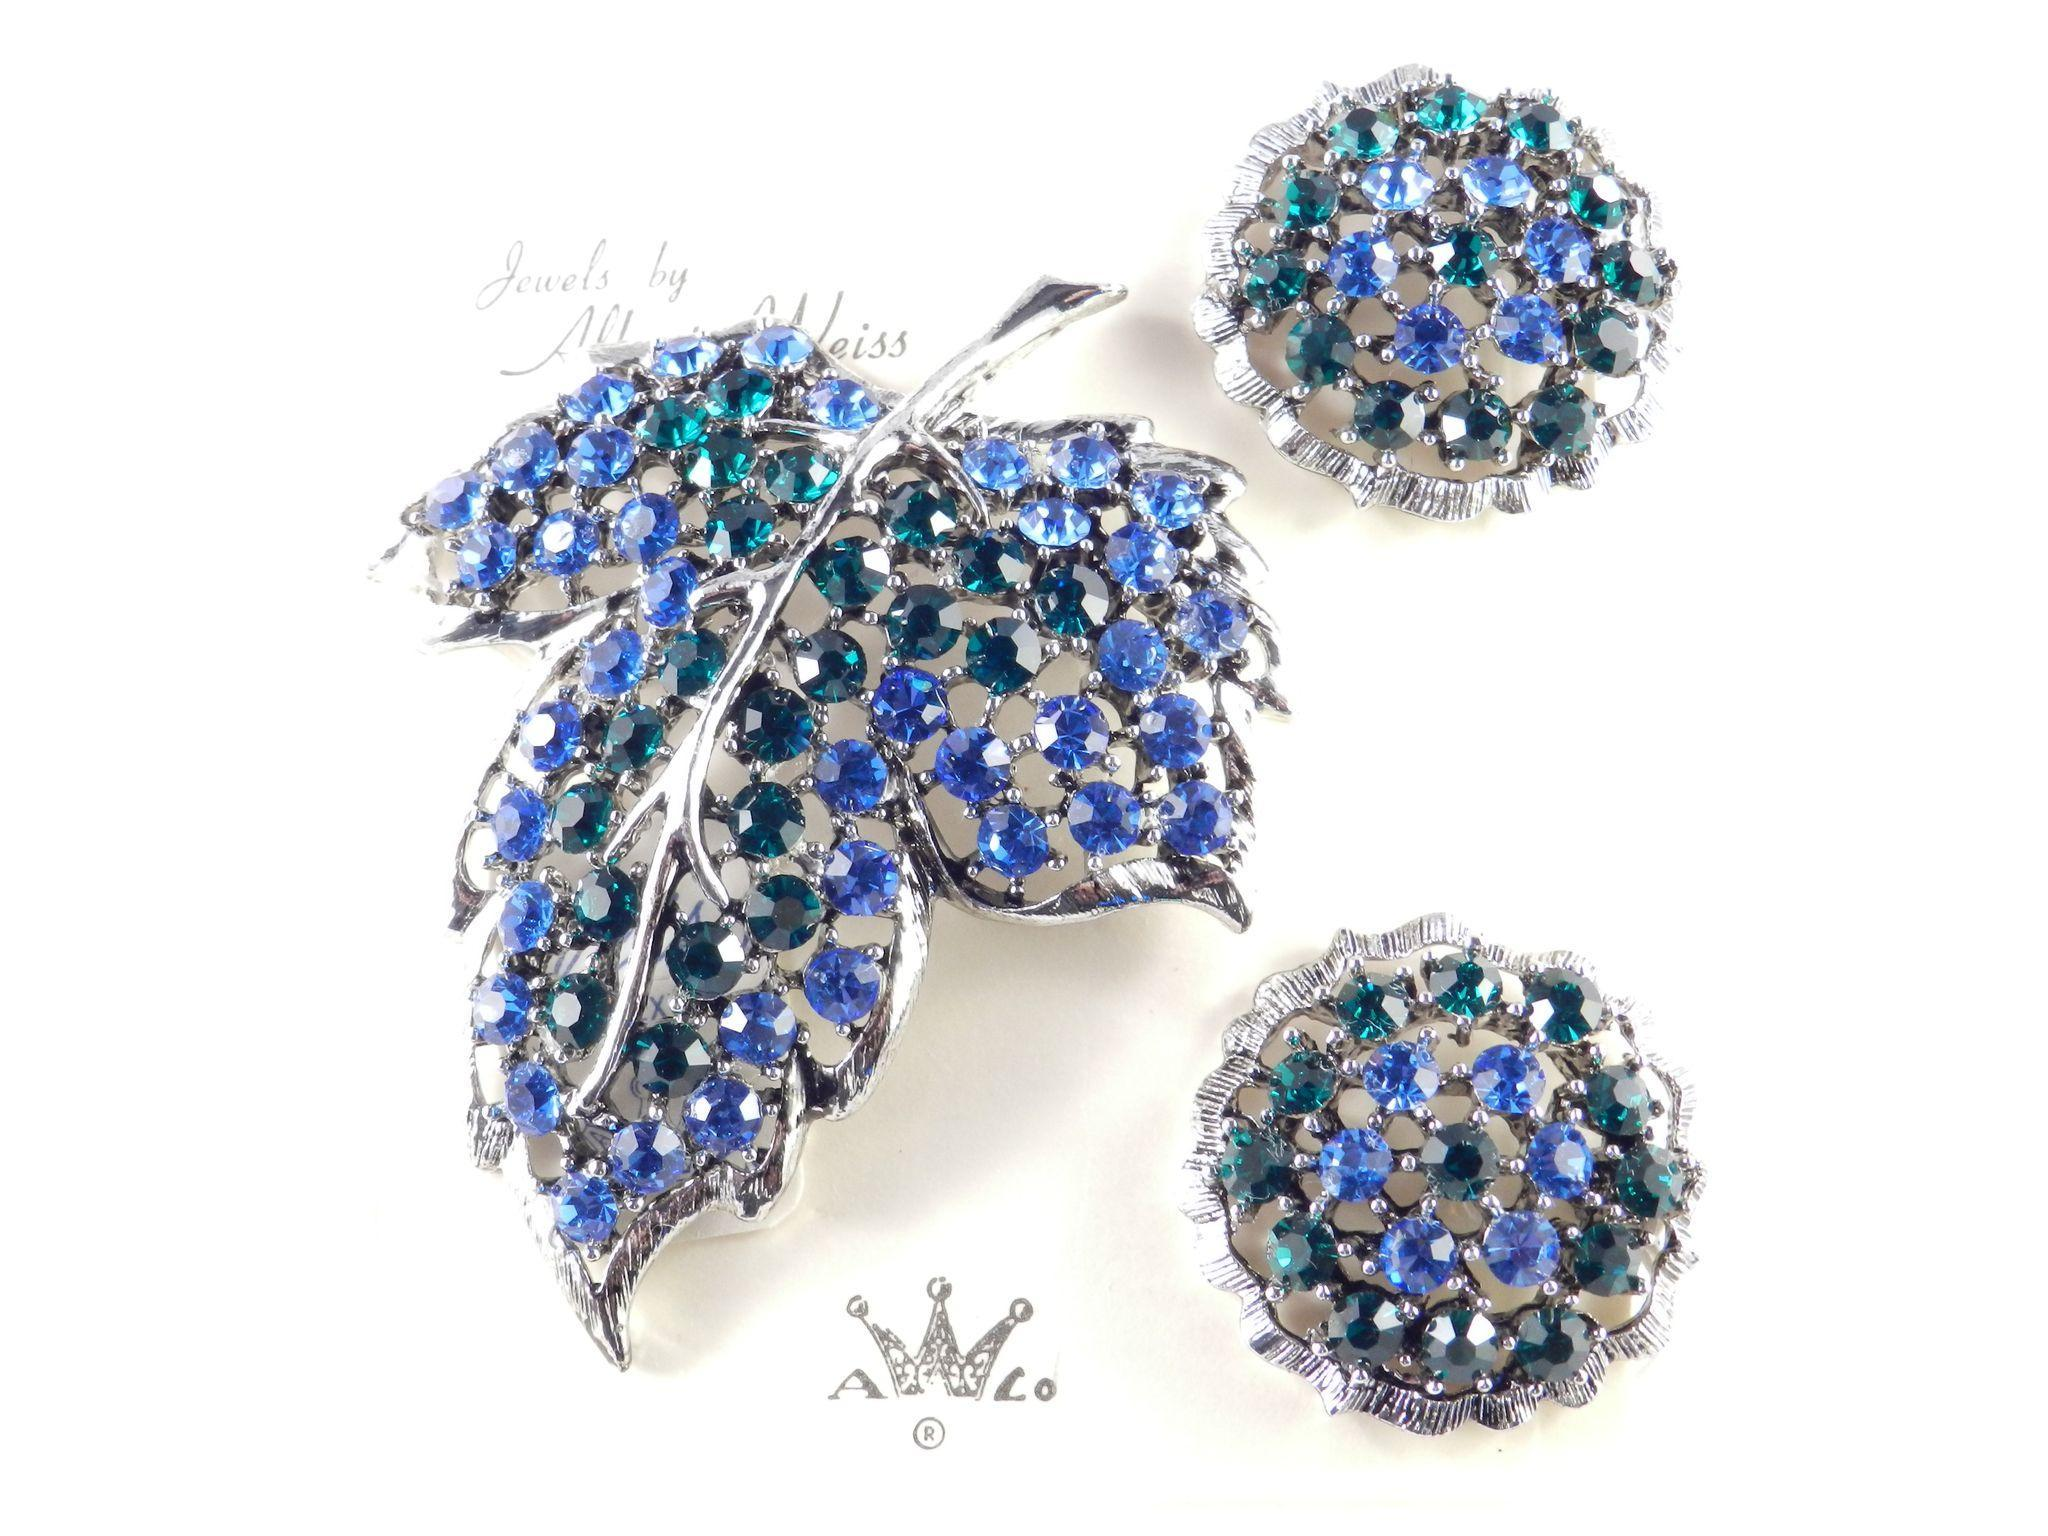 Albert Weiss Rhinestone Leaf Brooch Pin Earrings Set Demi Parure Original Card / Tags